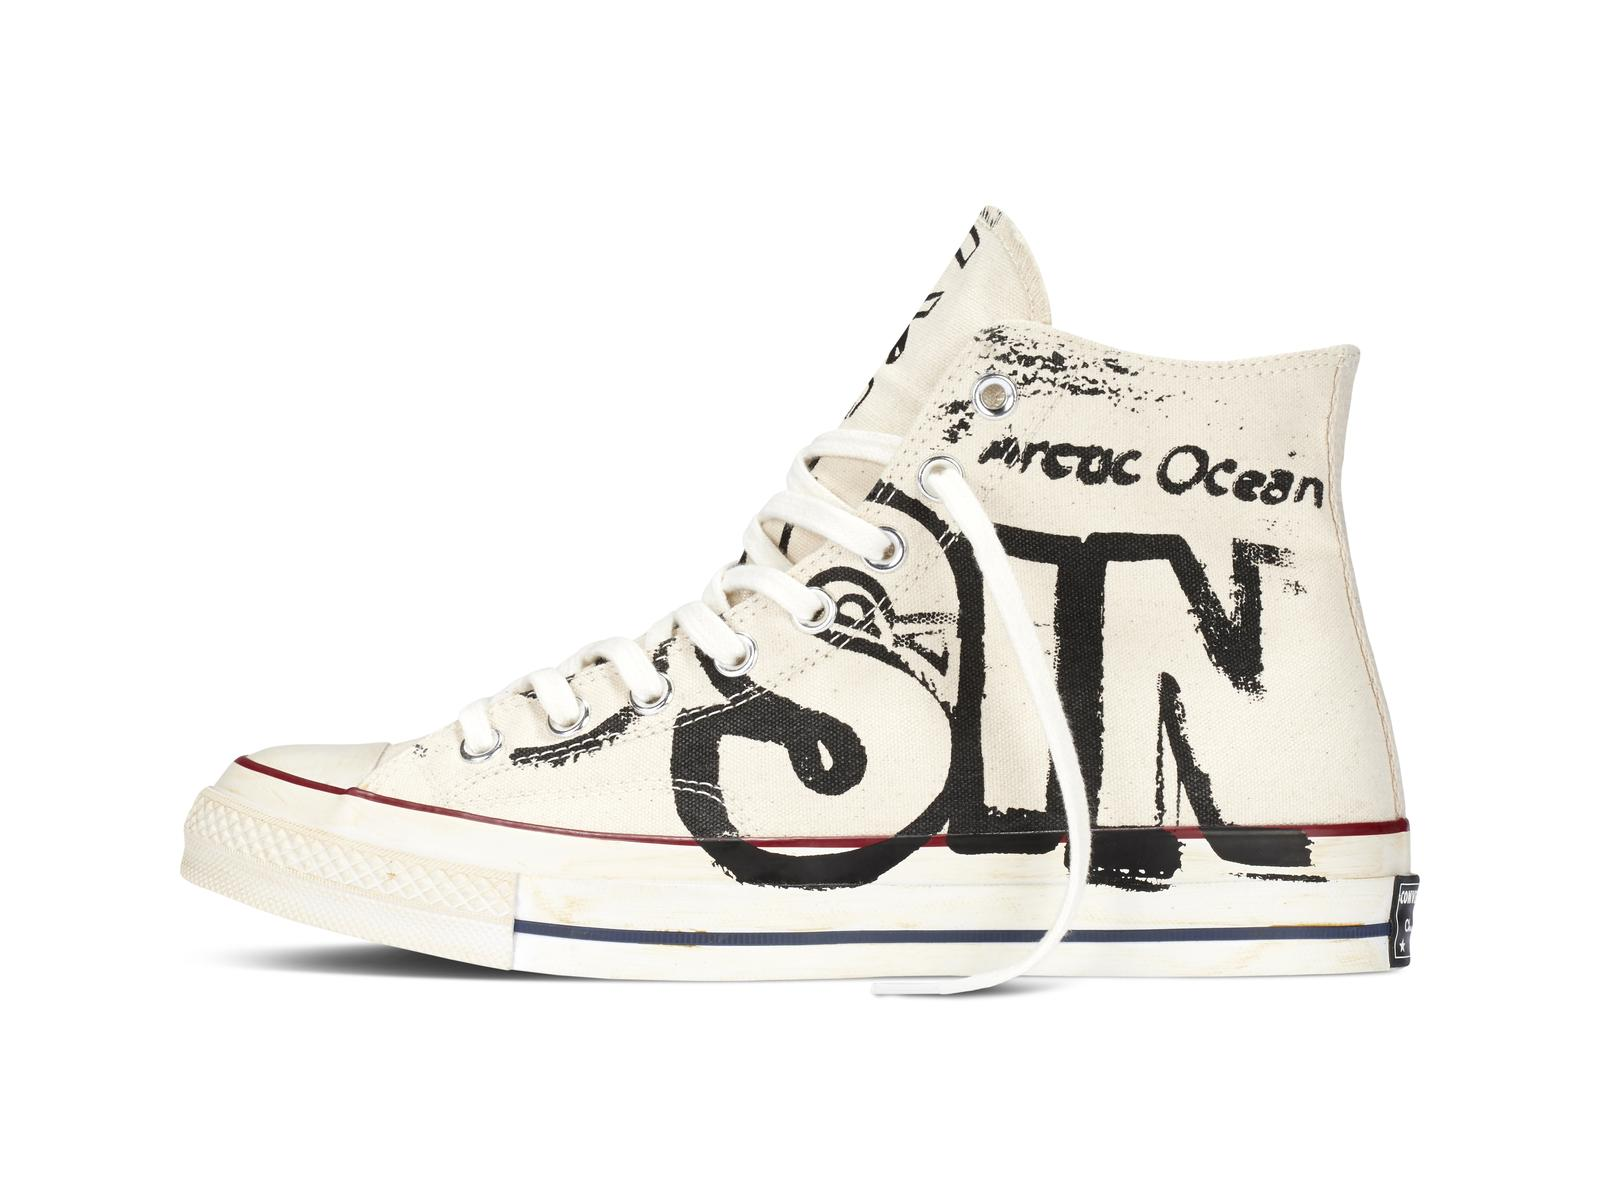 converse unveils limited edition andy warhol sneaker. Black Bedroom Furniture Sets. Home Design Ideas